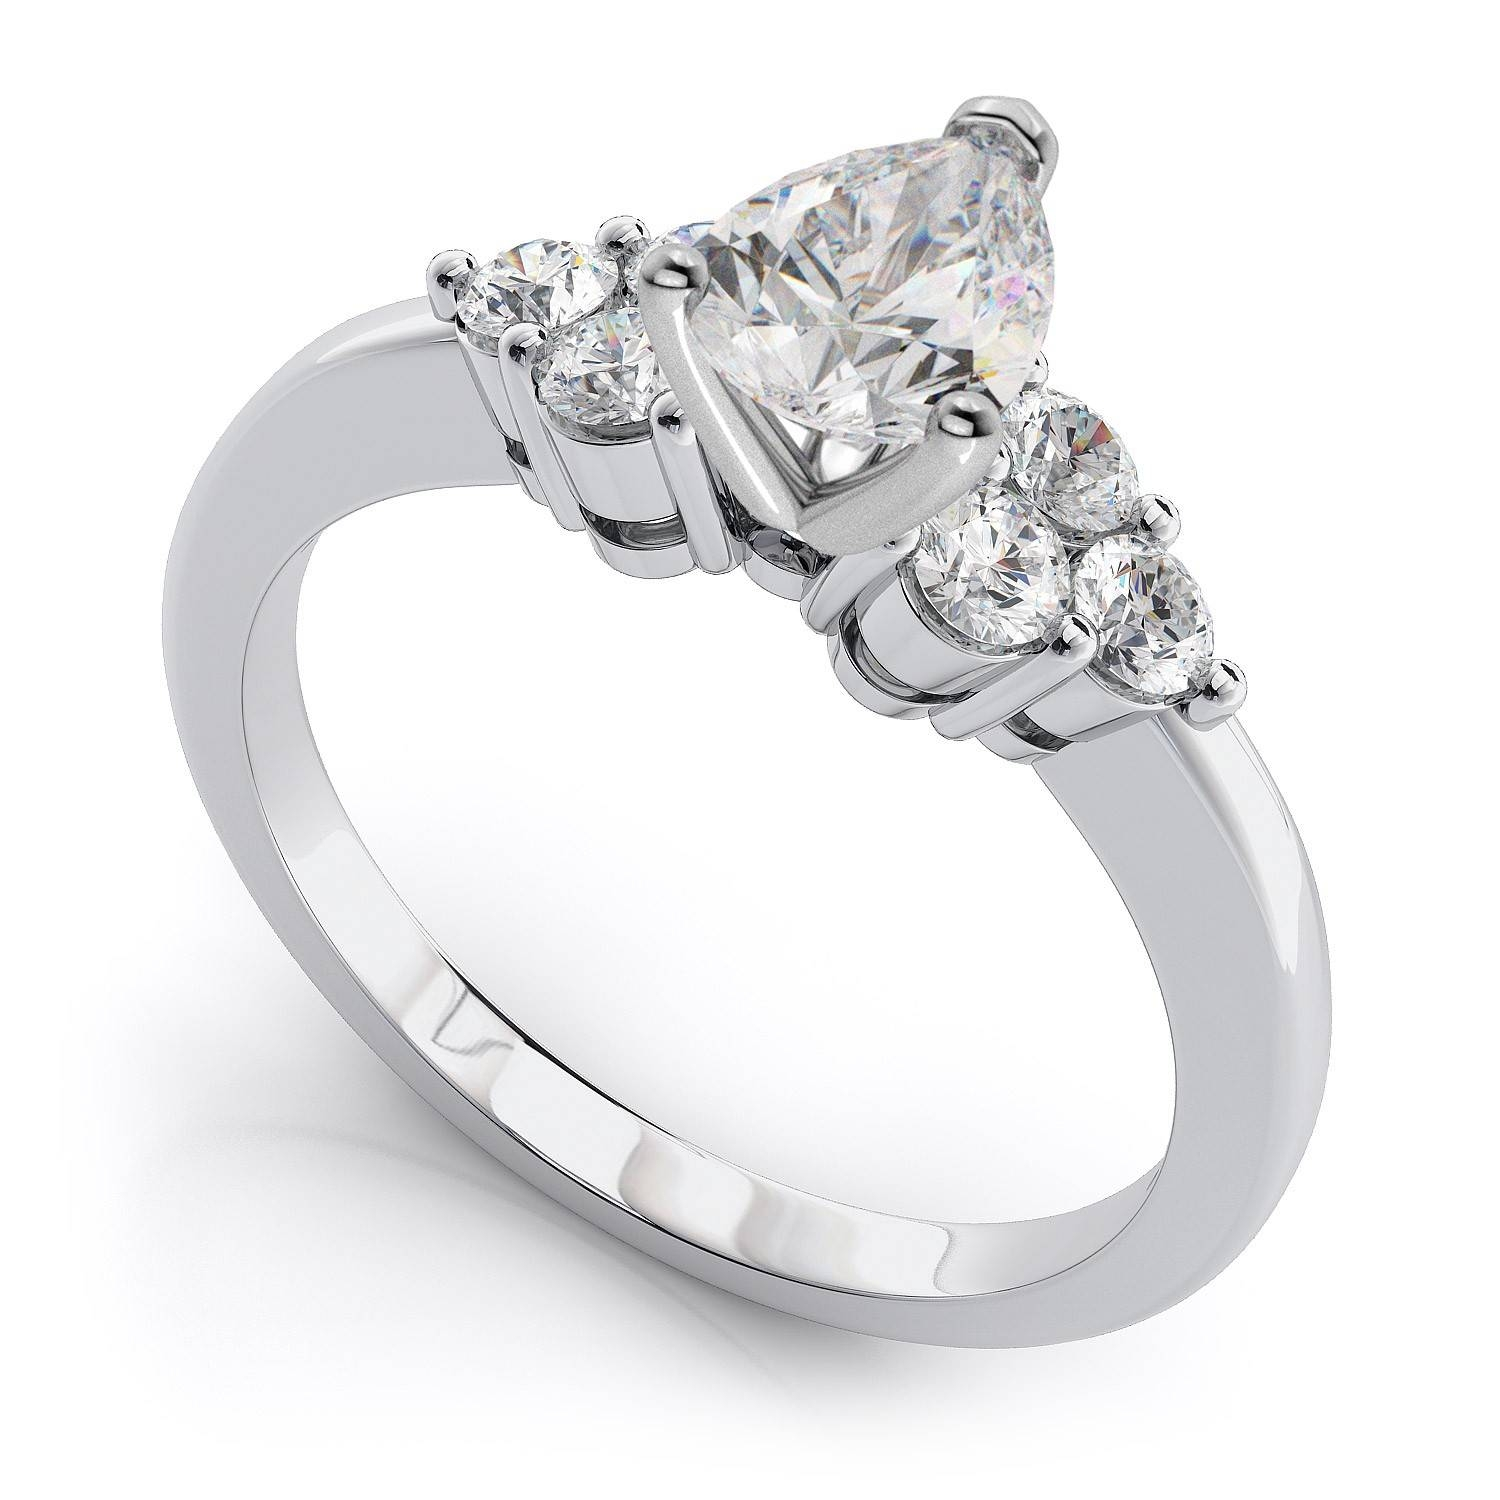 Photo Gallery of Platinum Wedding Rings Settings Viewing 6 of 15